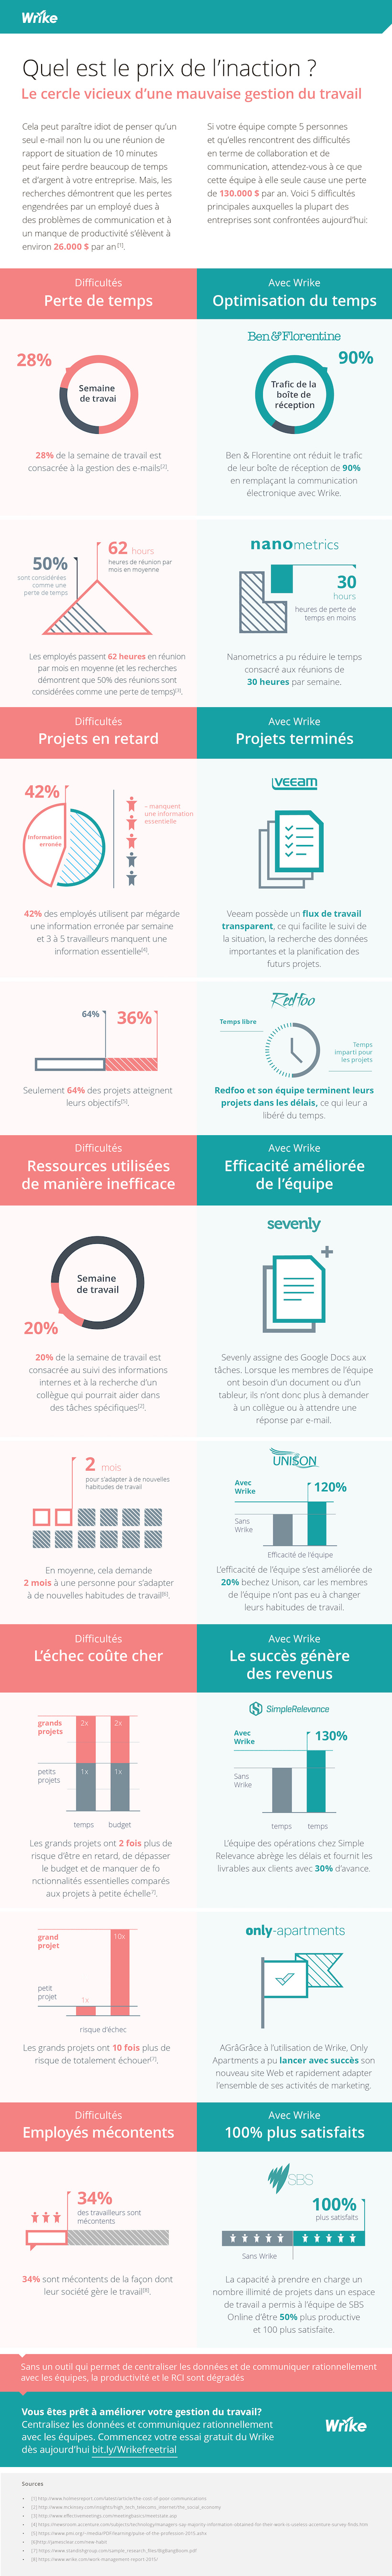 gestion travail cher infographie